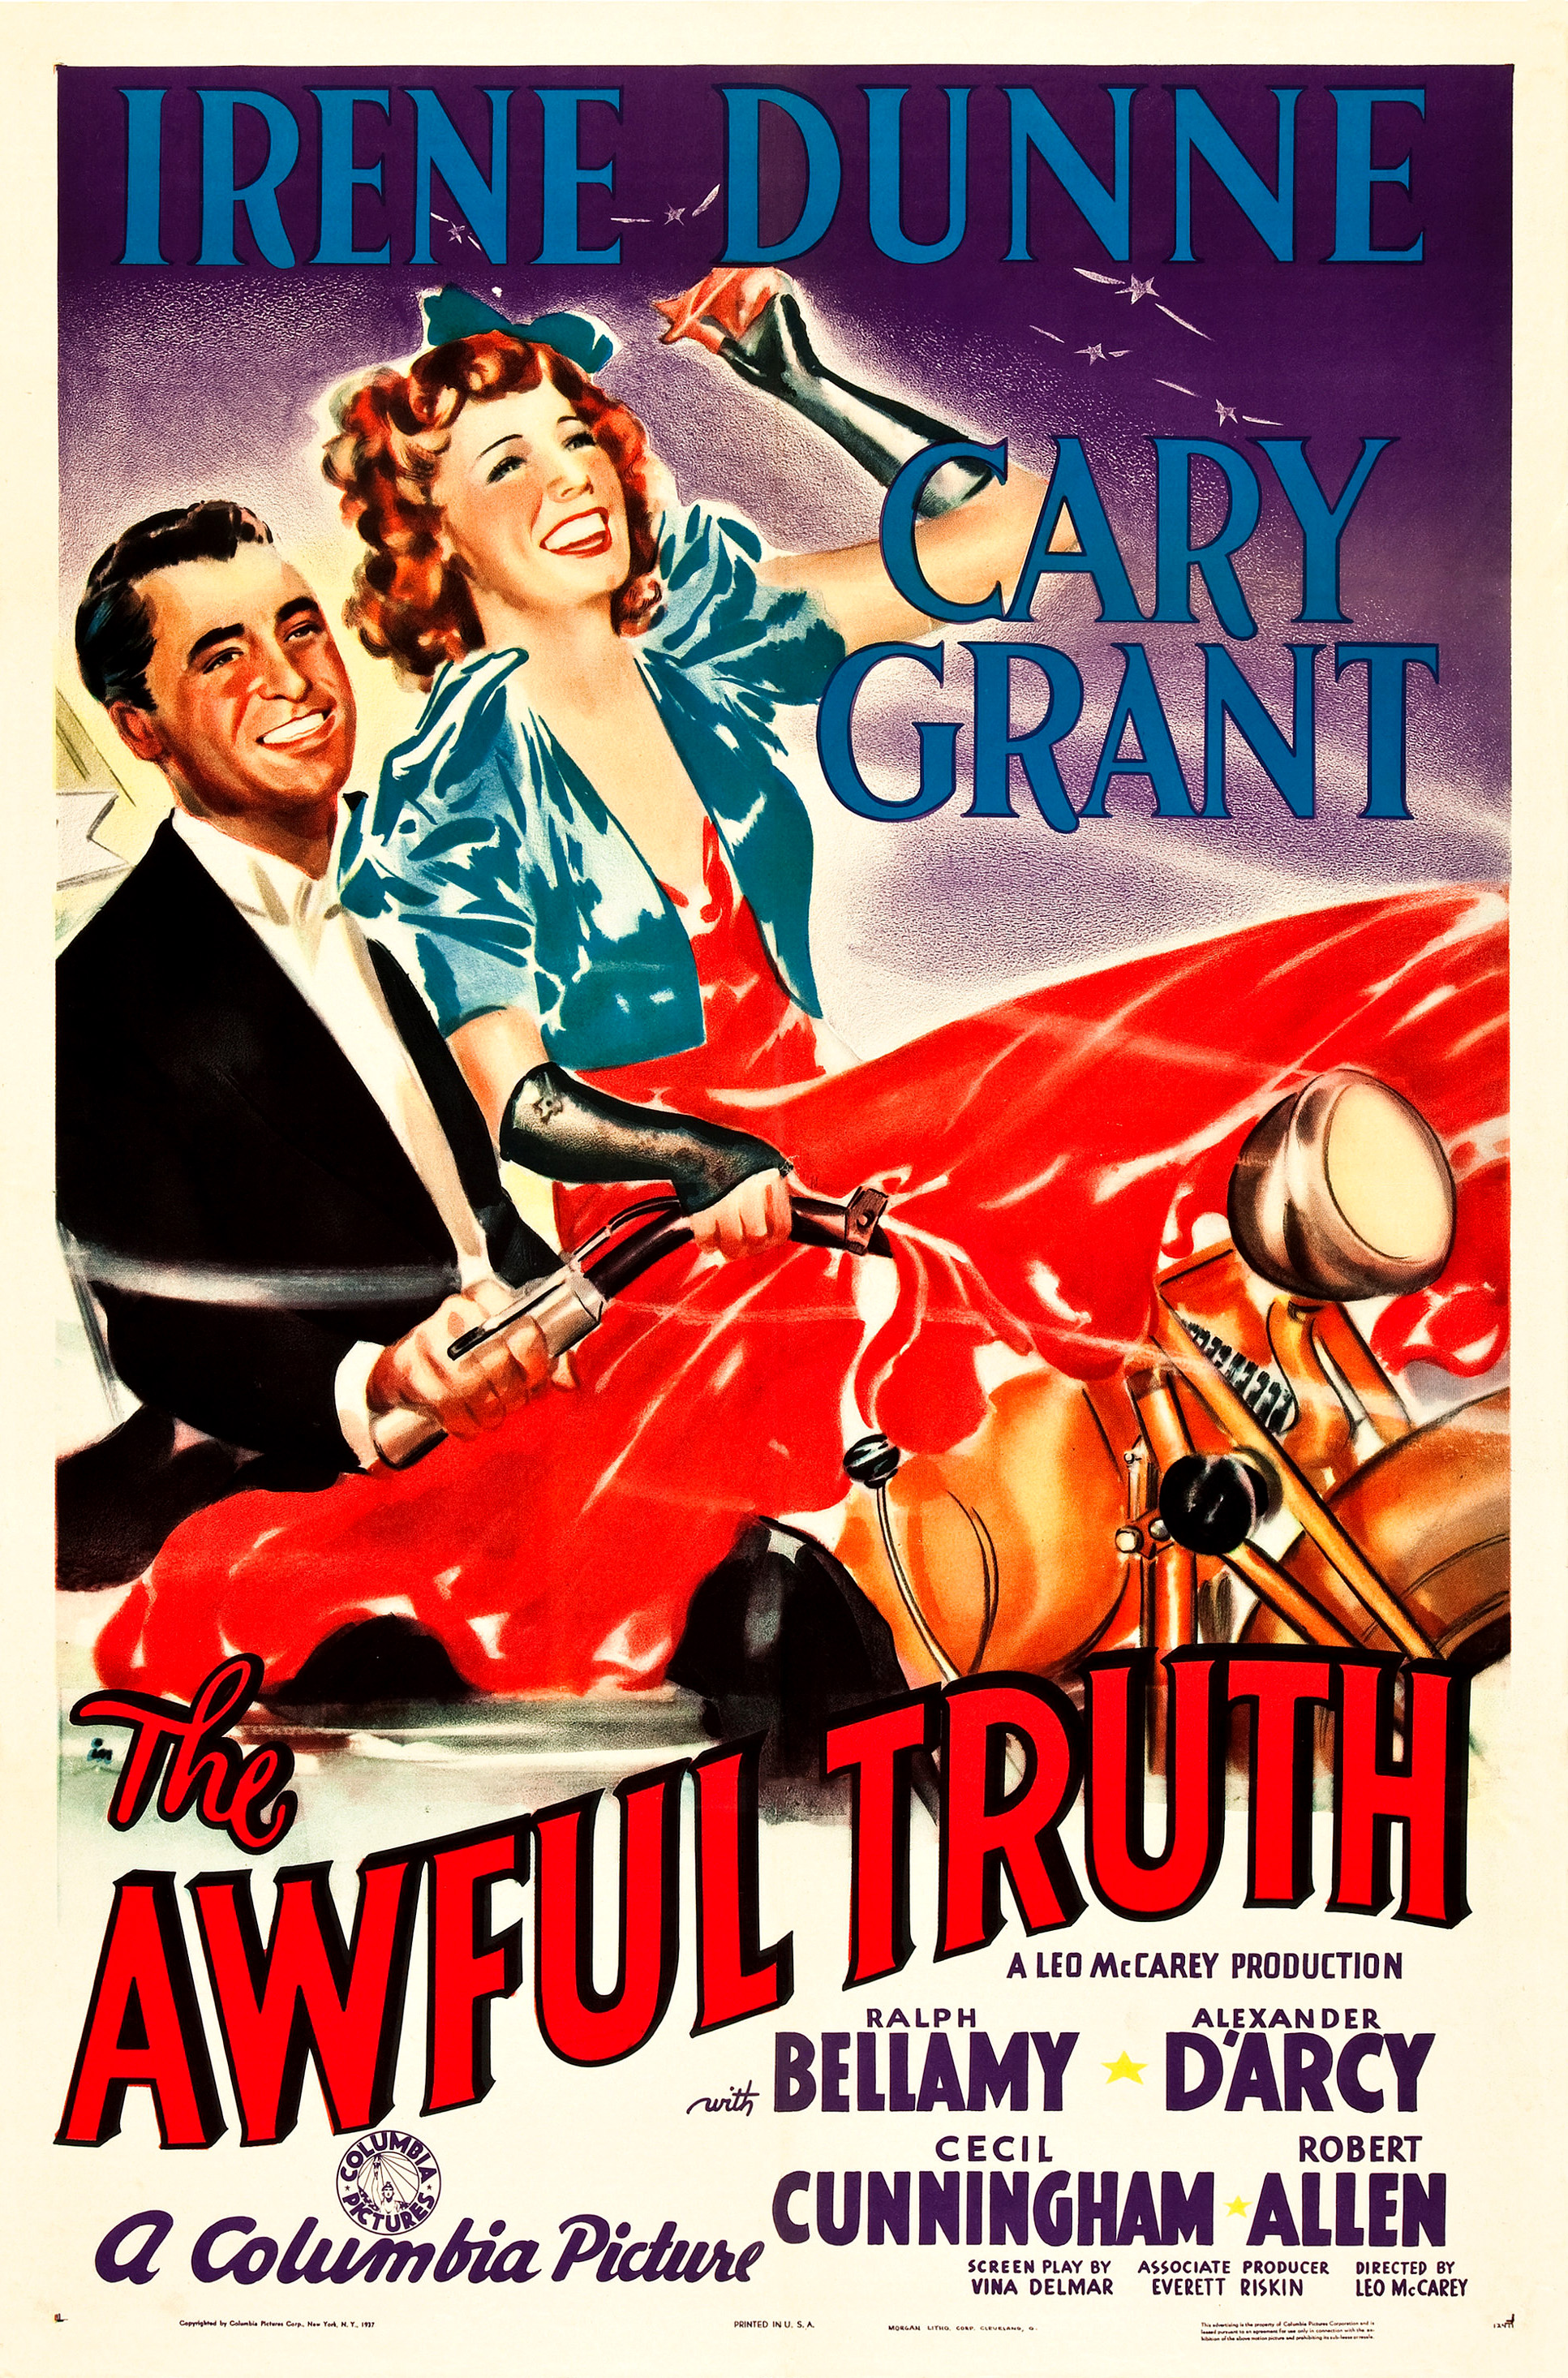 [Image: The_Awful_Truth_%281937_poster%29.jpg]